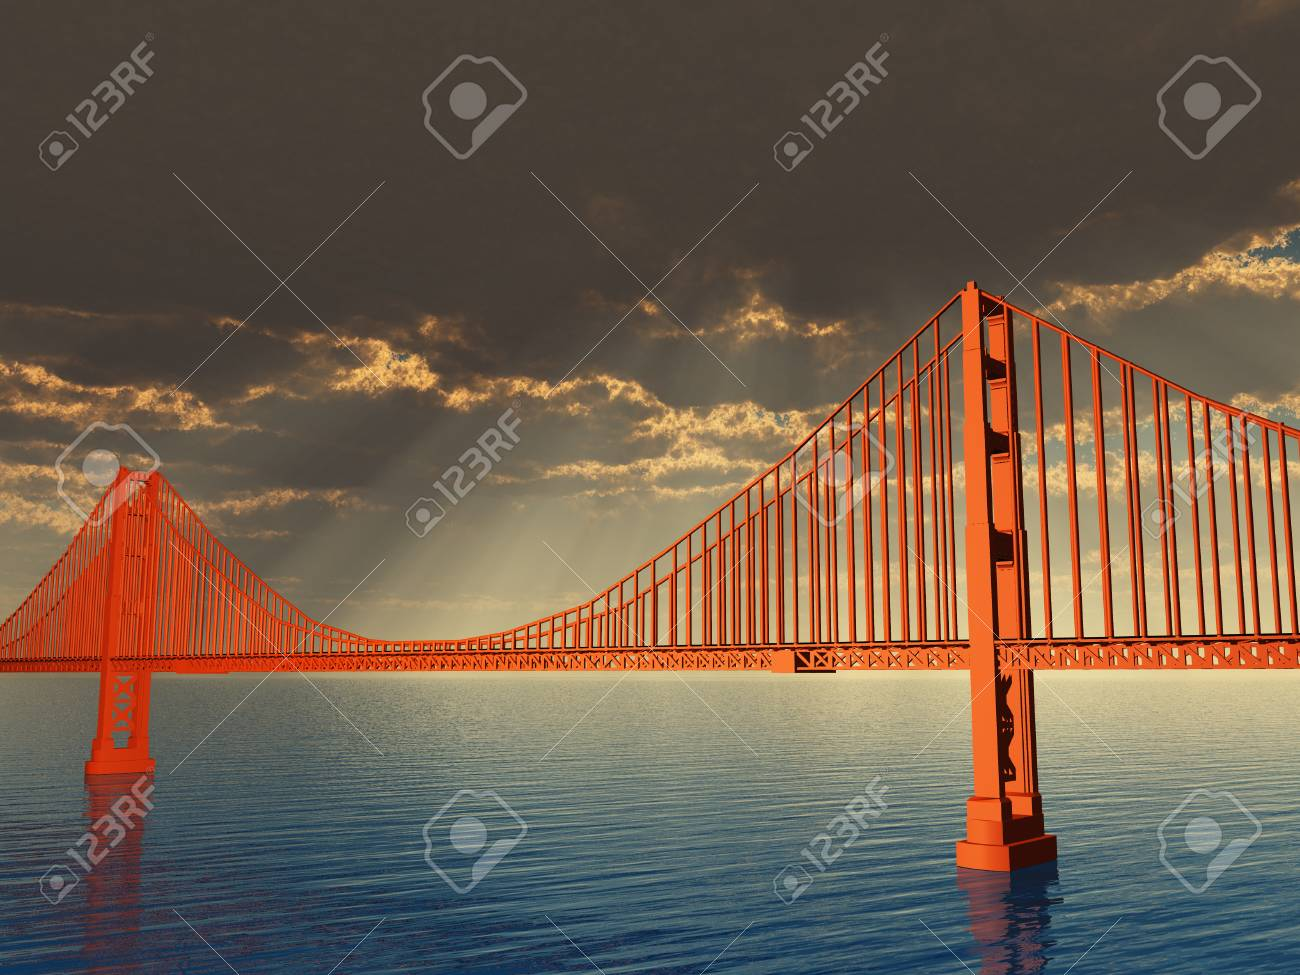 Golden Gate Bridge Illustration Stock Photo Picture And Royalty Diagram Of The 50746497